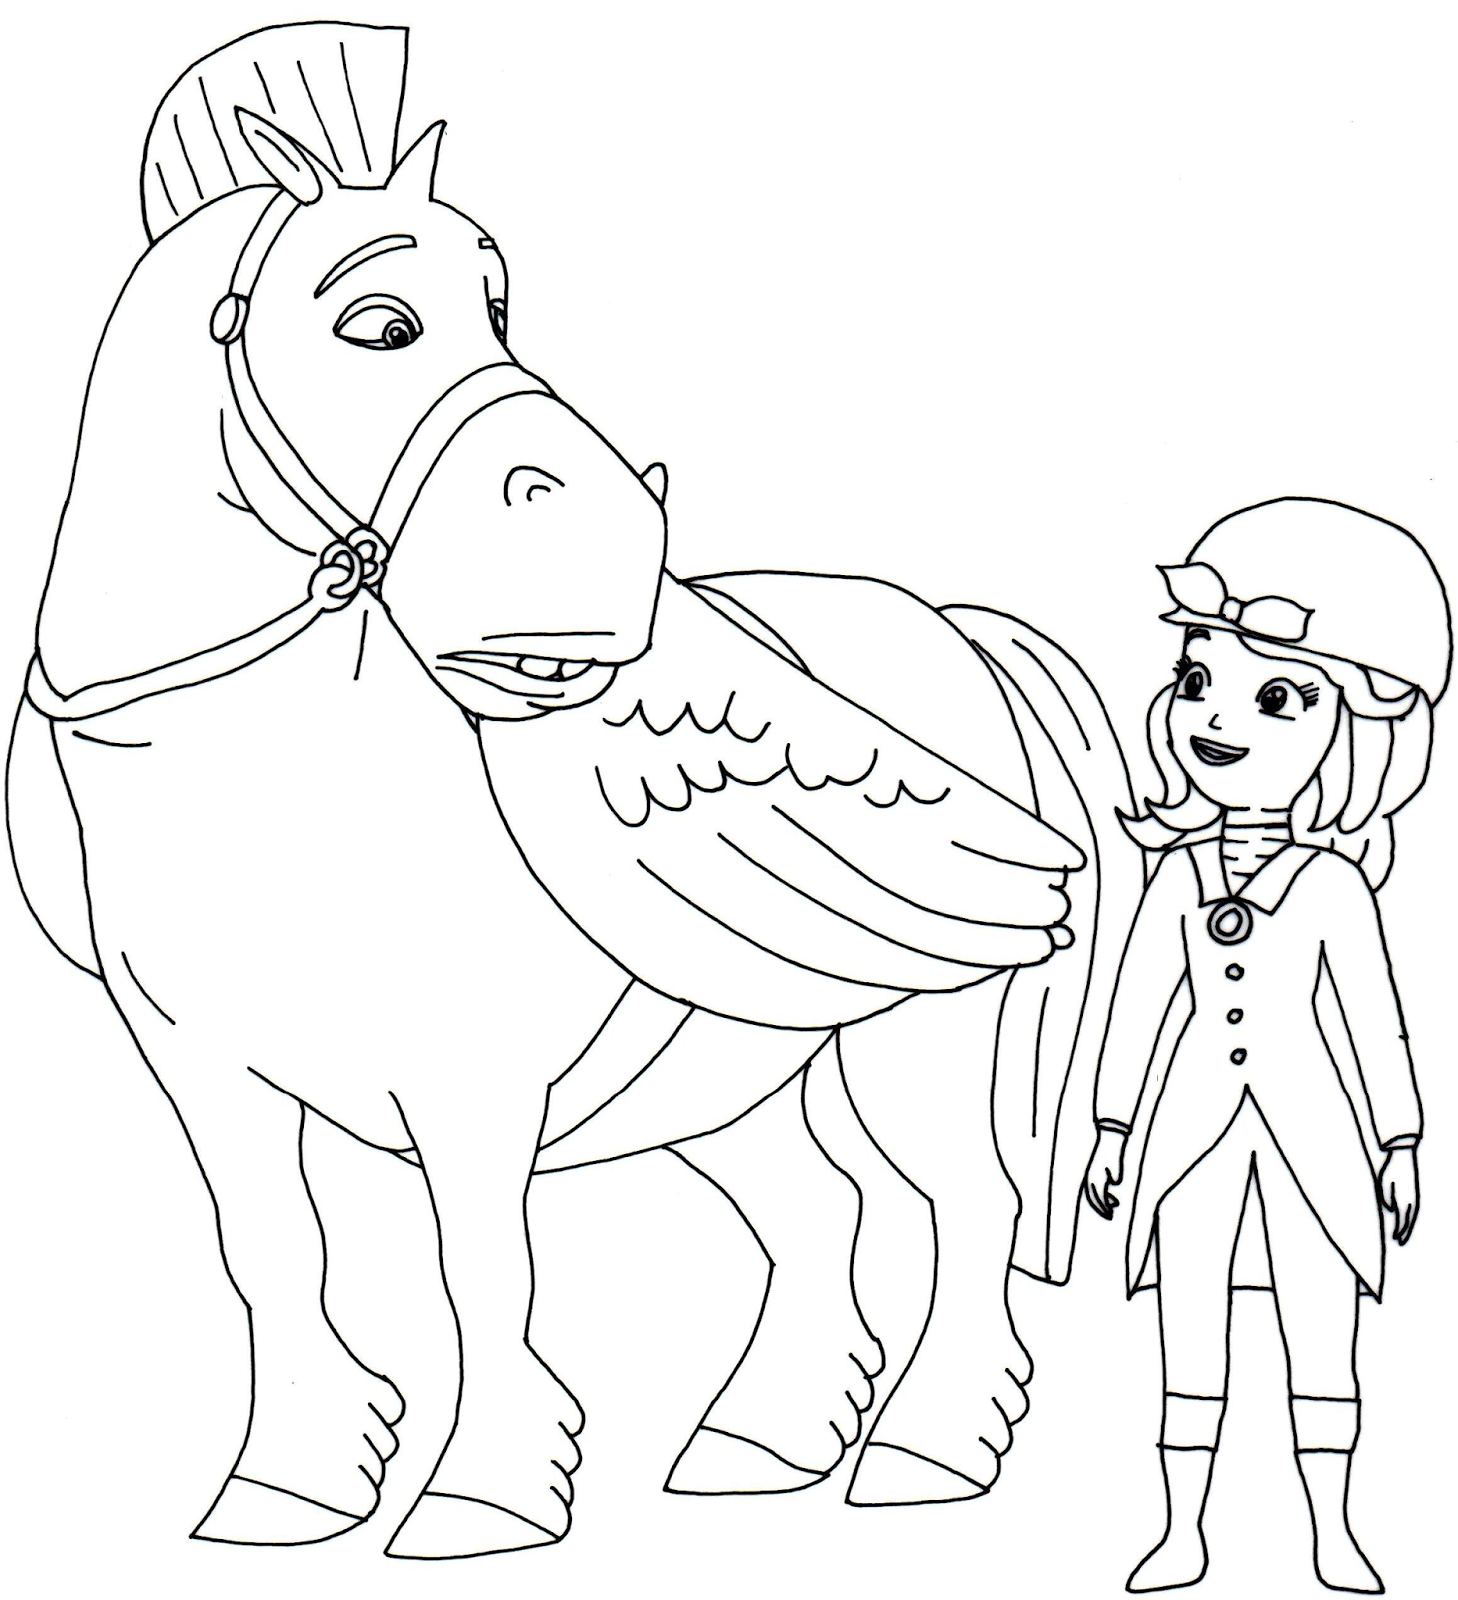 Sofia The First Coloring Pages Minimus the Great and Sofia the